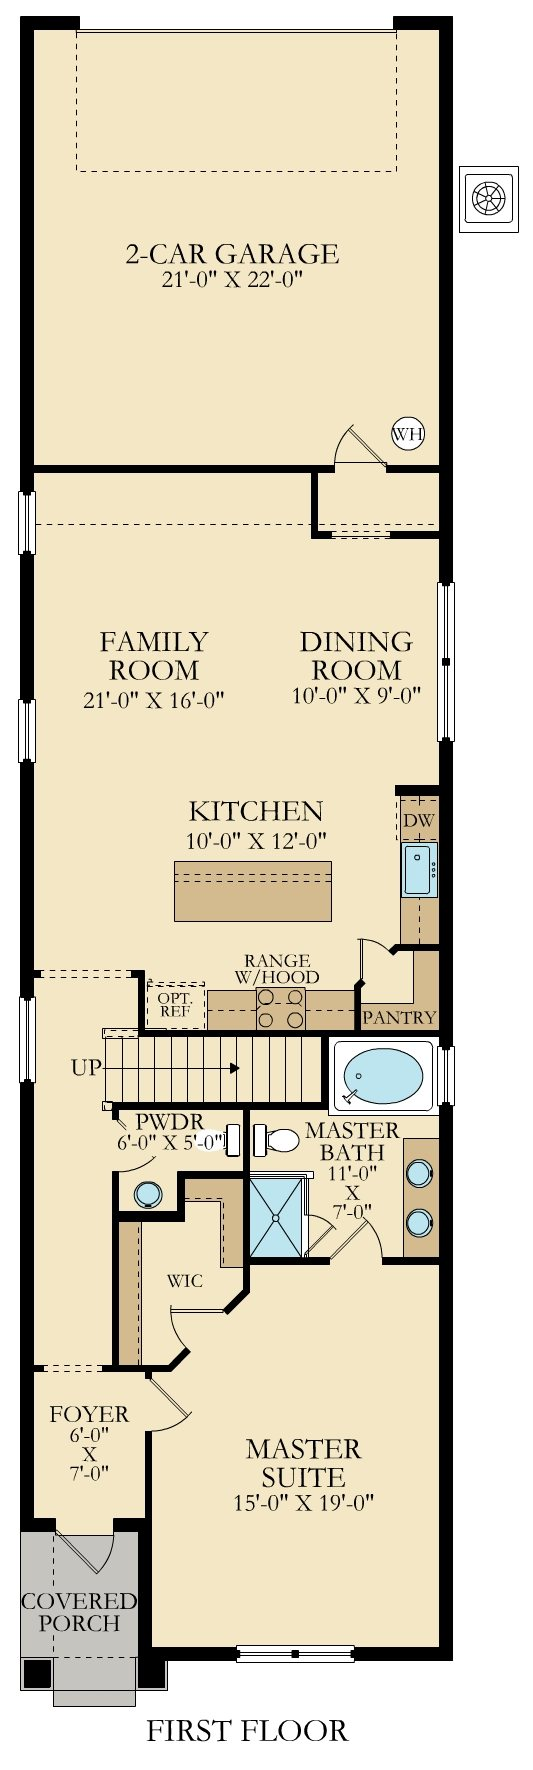 asheville-floorplan.jpg